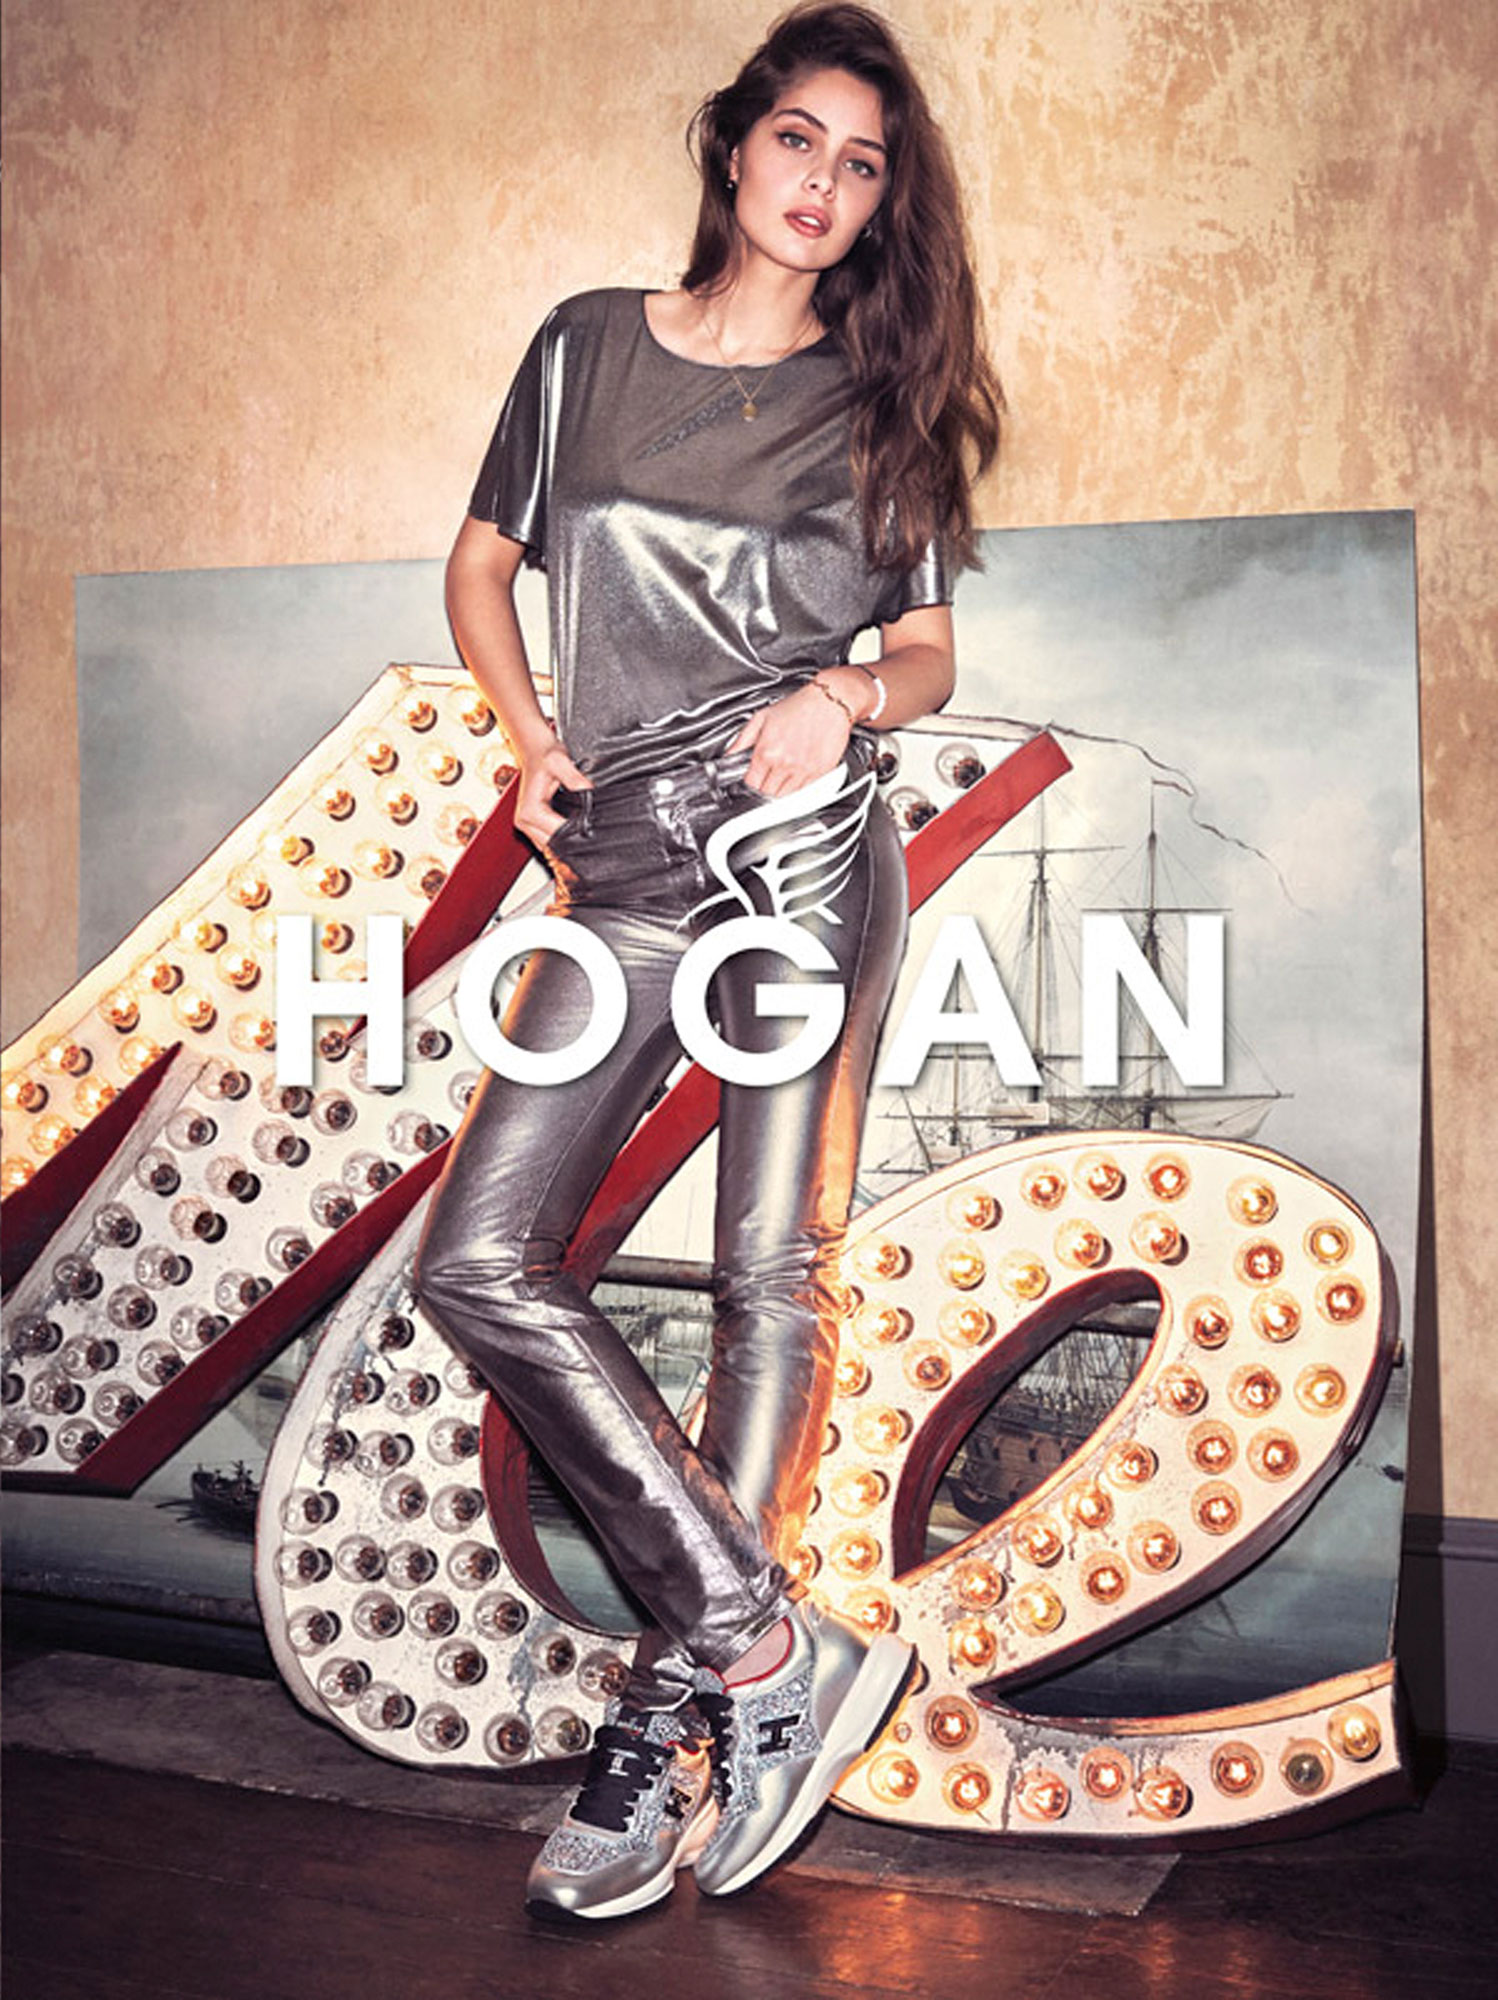 Hogan Campaign SS 2016 | Michelangelo di Battista | Hogan | Vogue Sposa | Nadia Bonalumi | Numerique Retouch Photo Retouching Studio